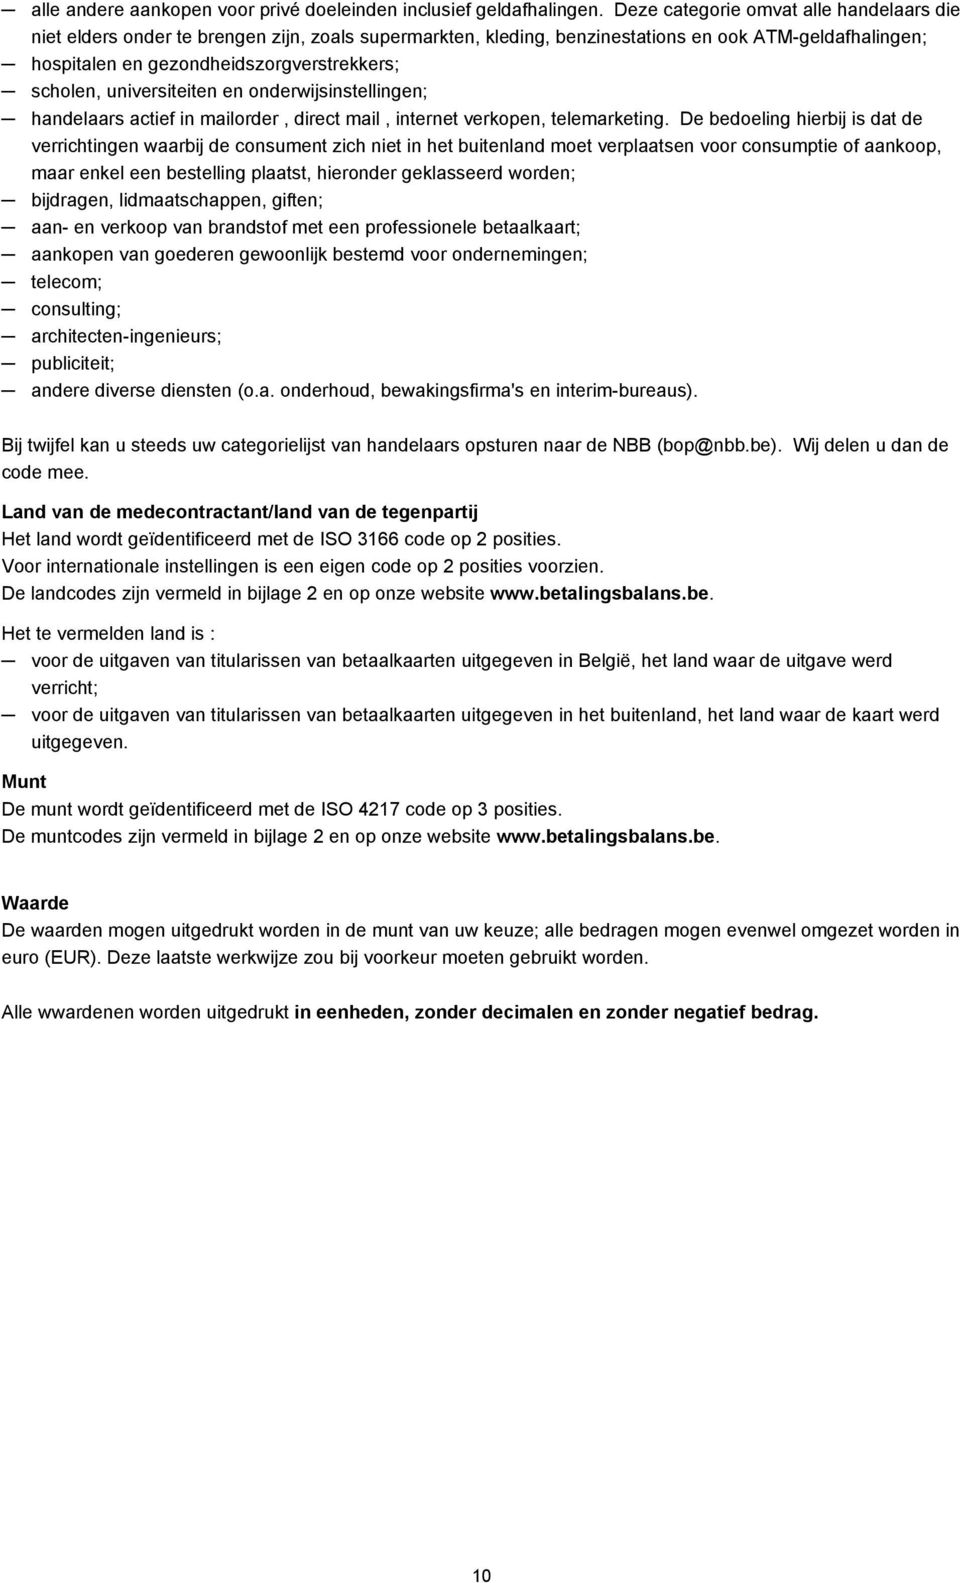 universiteiten en onderwijsinstellingen; handelaars actief in mailorder, direct mail, internet verkopen, telemarketing.